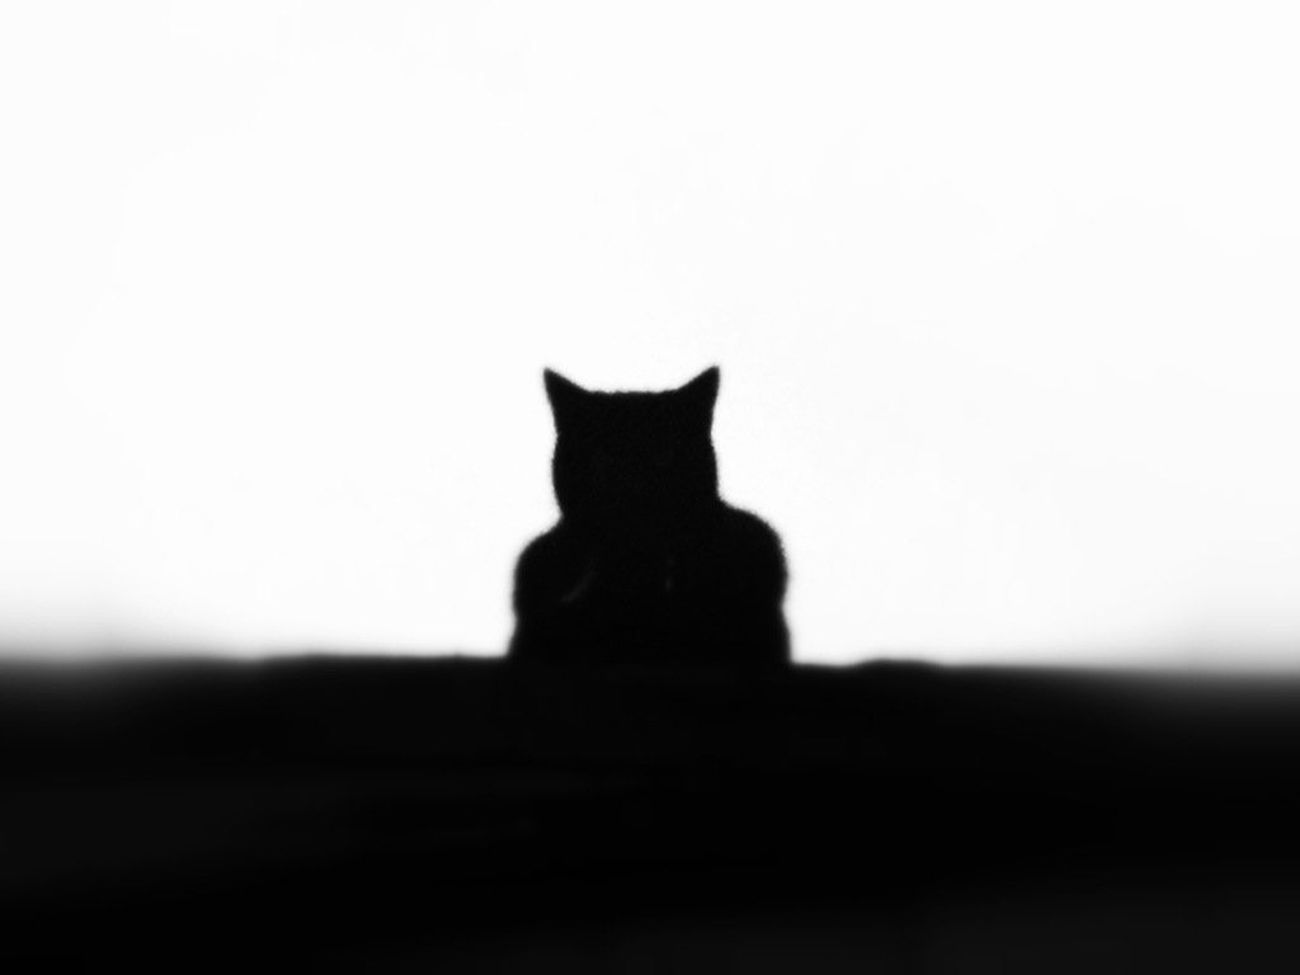 Black & White Cat Animals EyeEm Best Edits